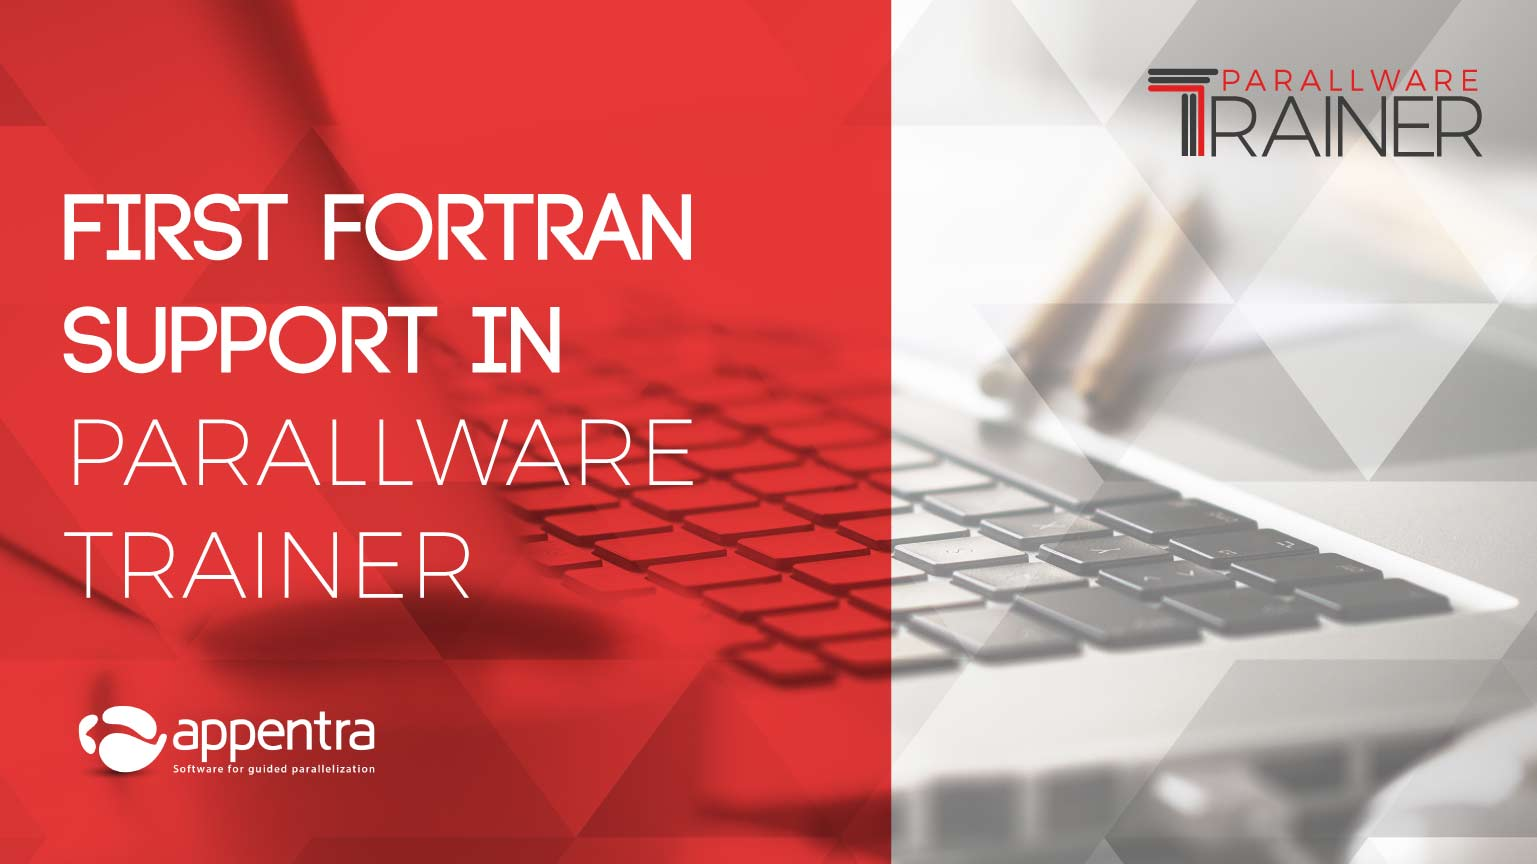 Parallware Trainer support Fortran